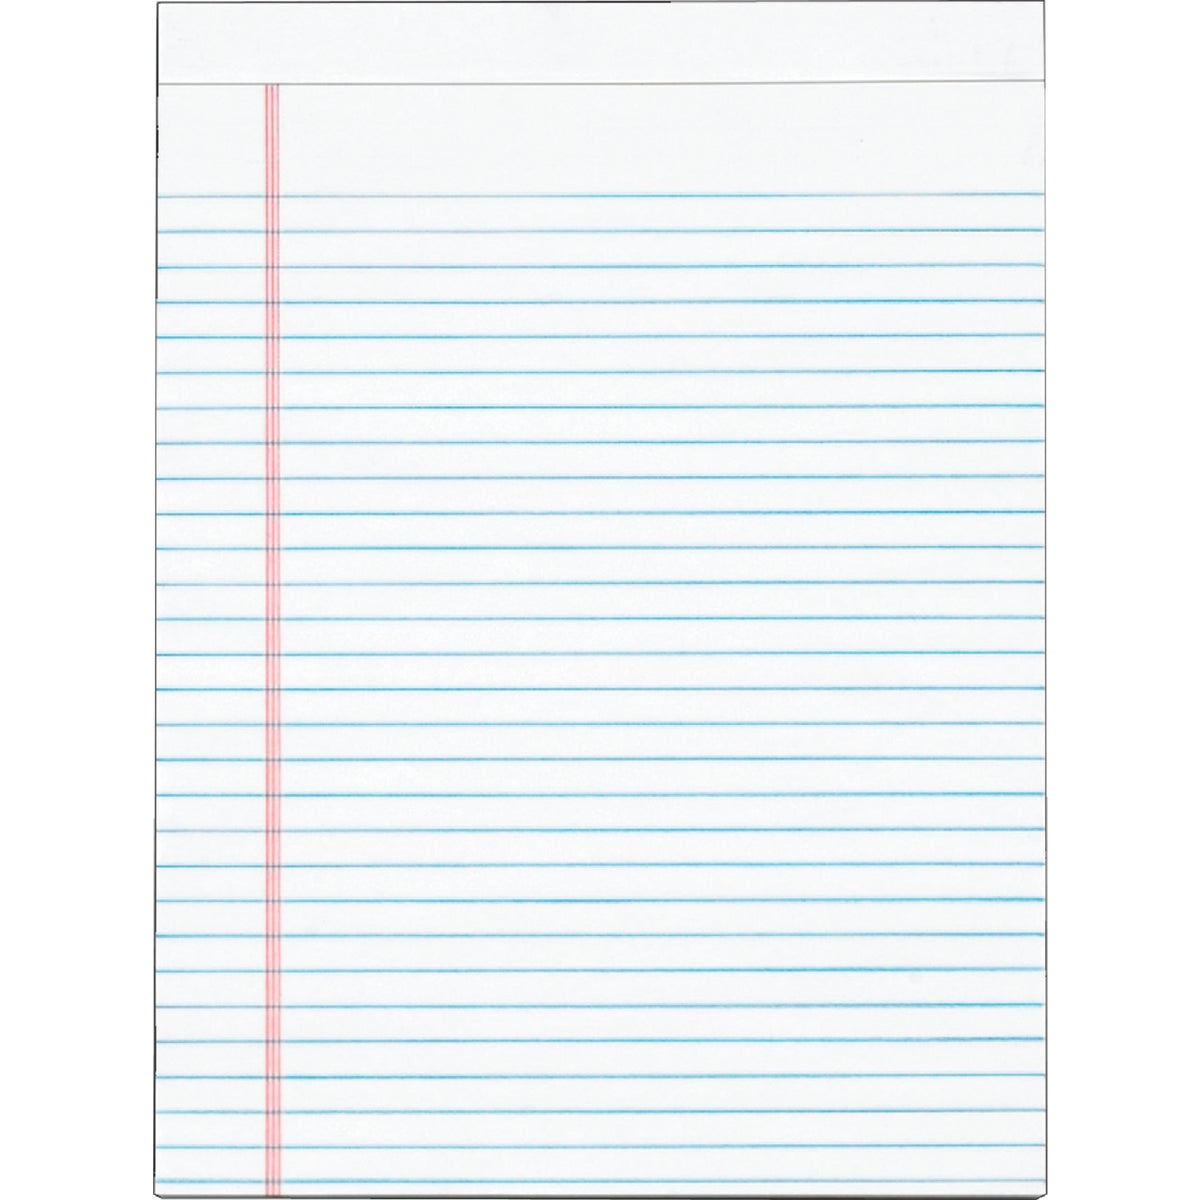 12 WHT LEGAL PAD - 683280 by Staples